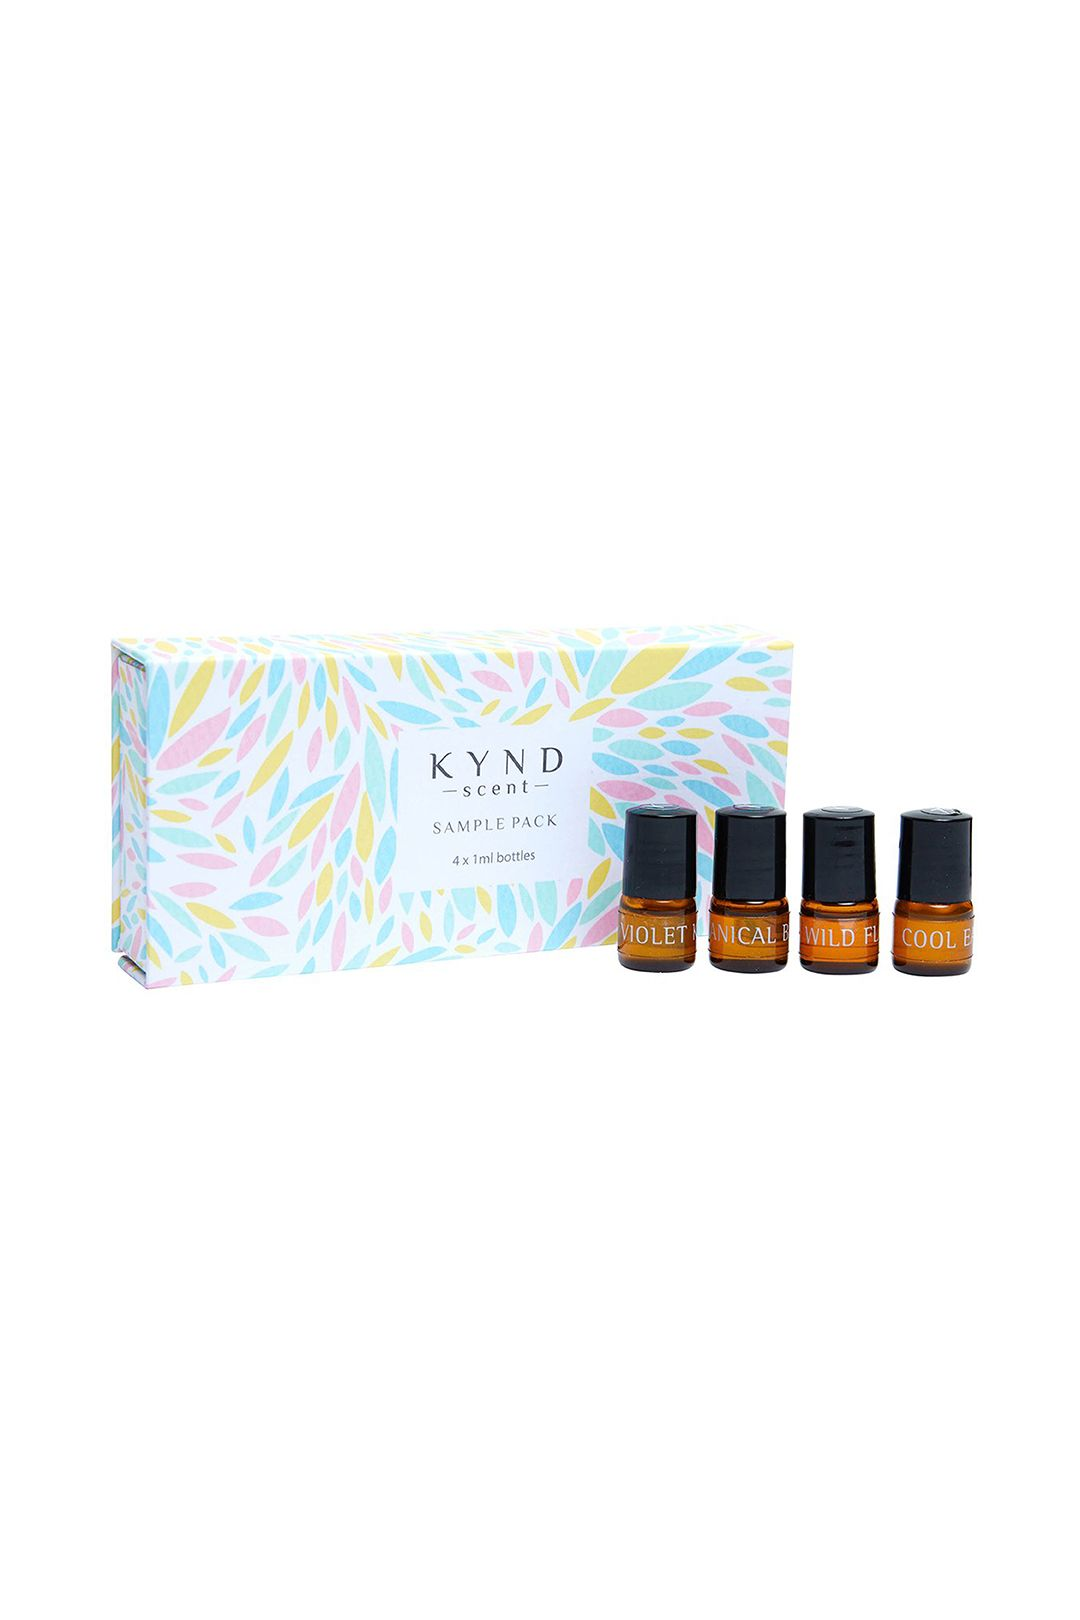 kynd-scent-small-sample-pack-product-1